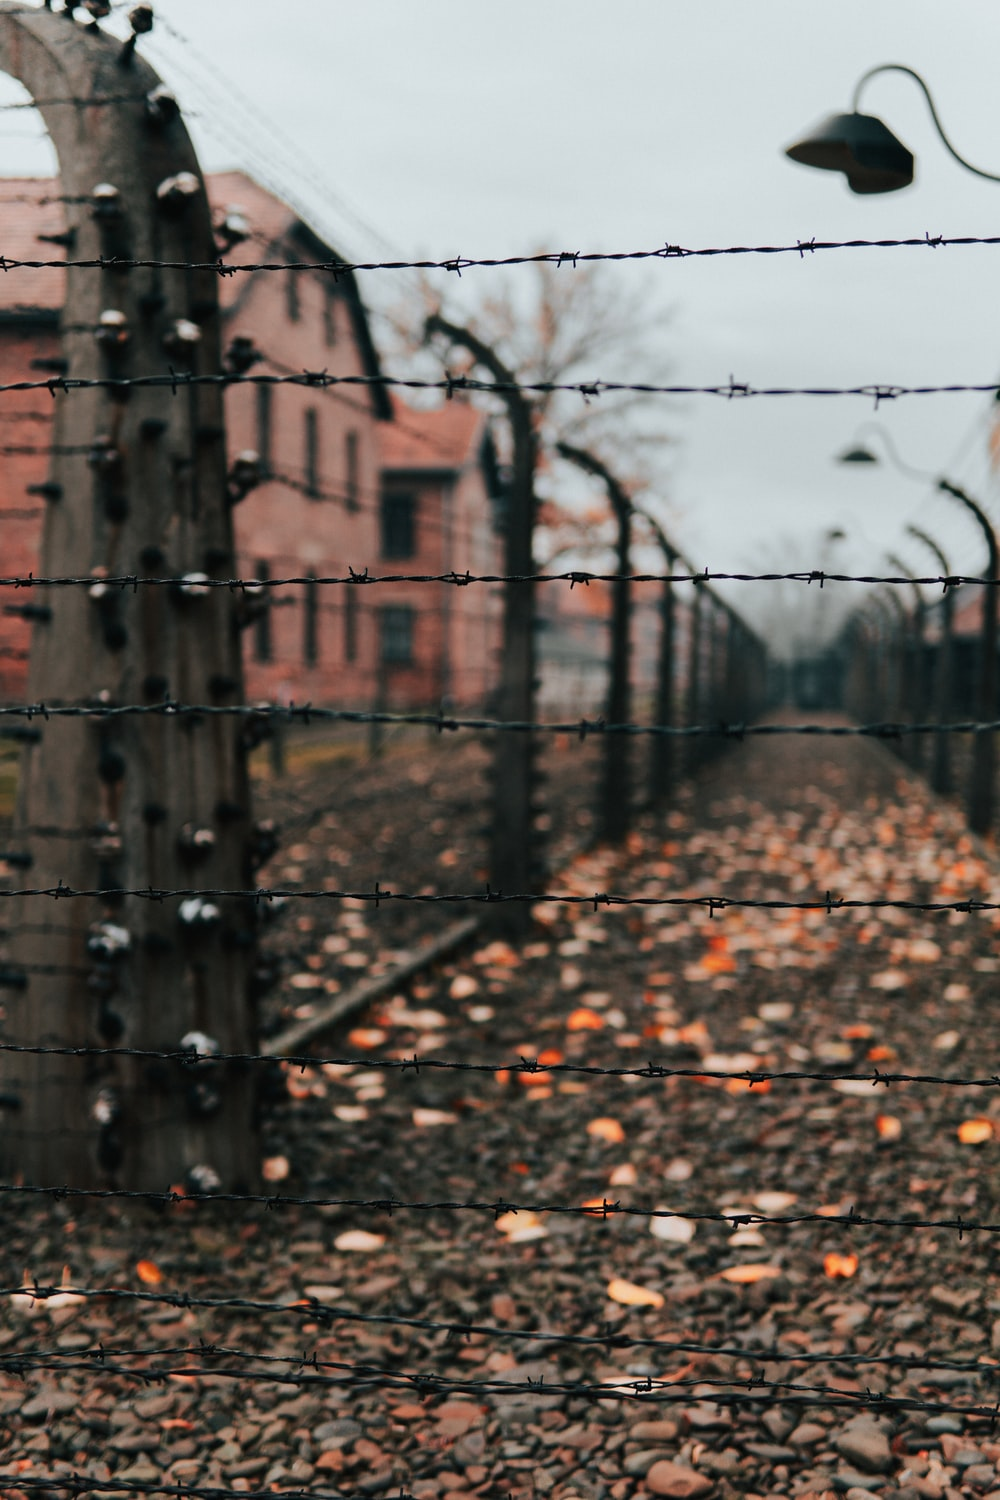 barbed wire fence in a concentration camp